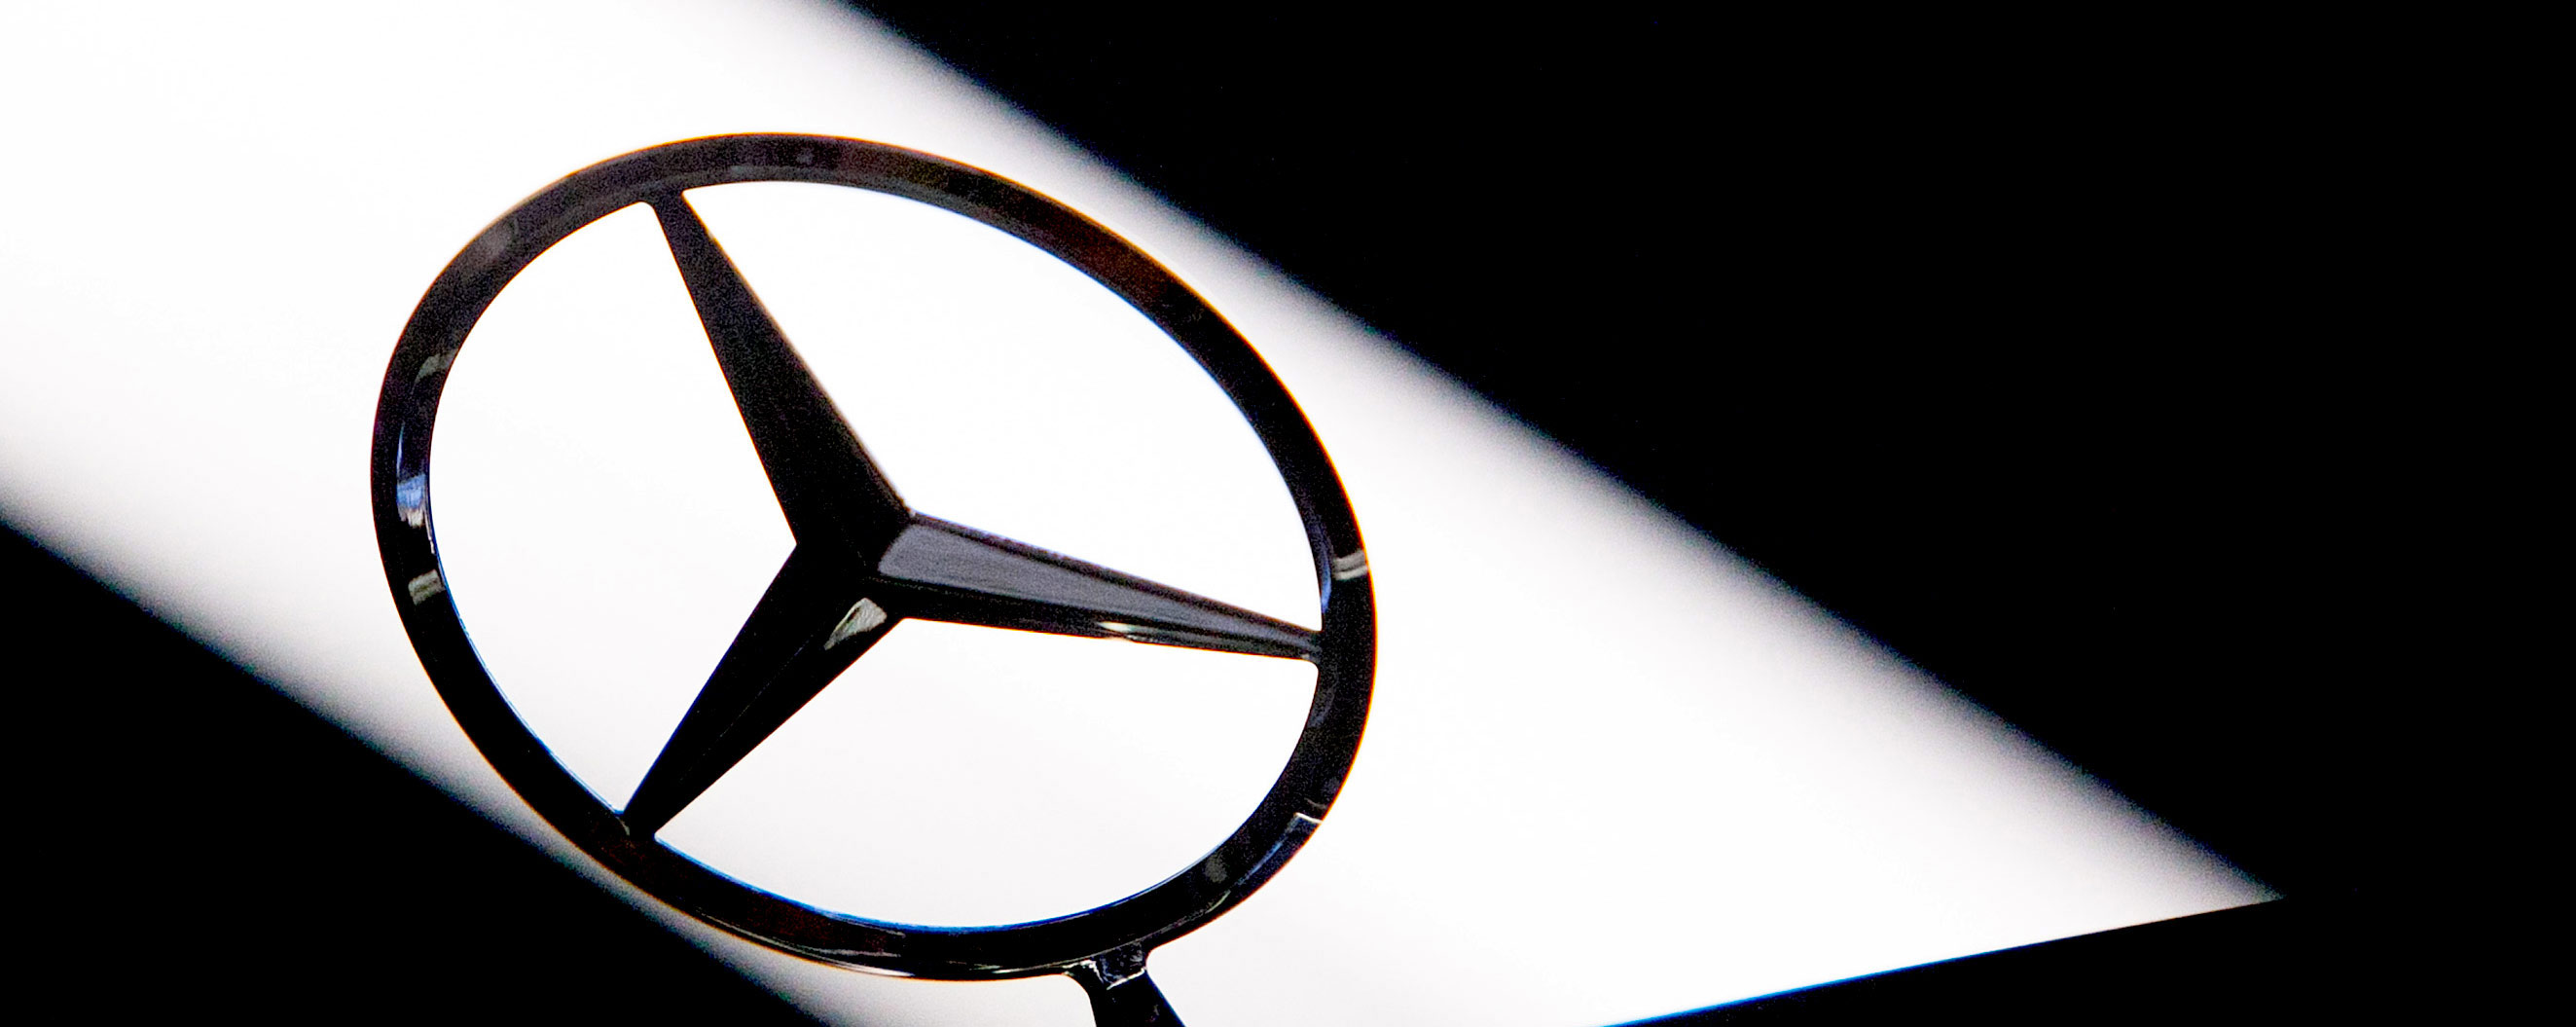 Daimler Profit Slumps as Mercedes Chokes on Diesel-Recall Costs